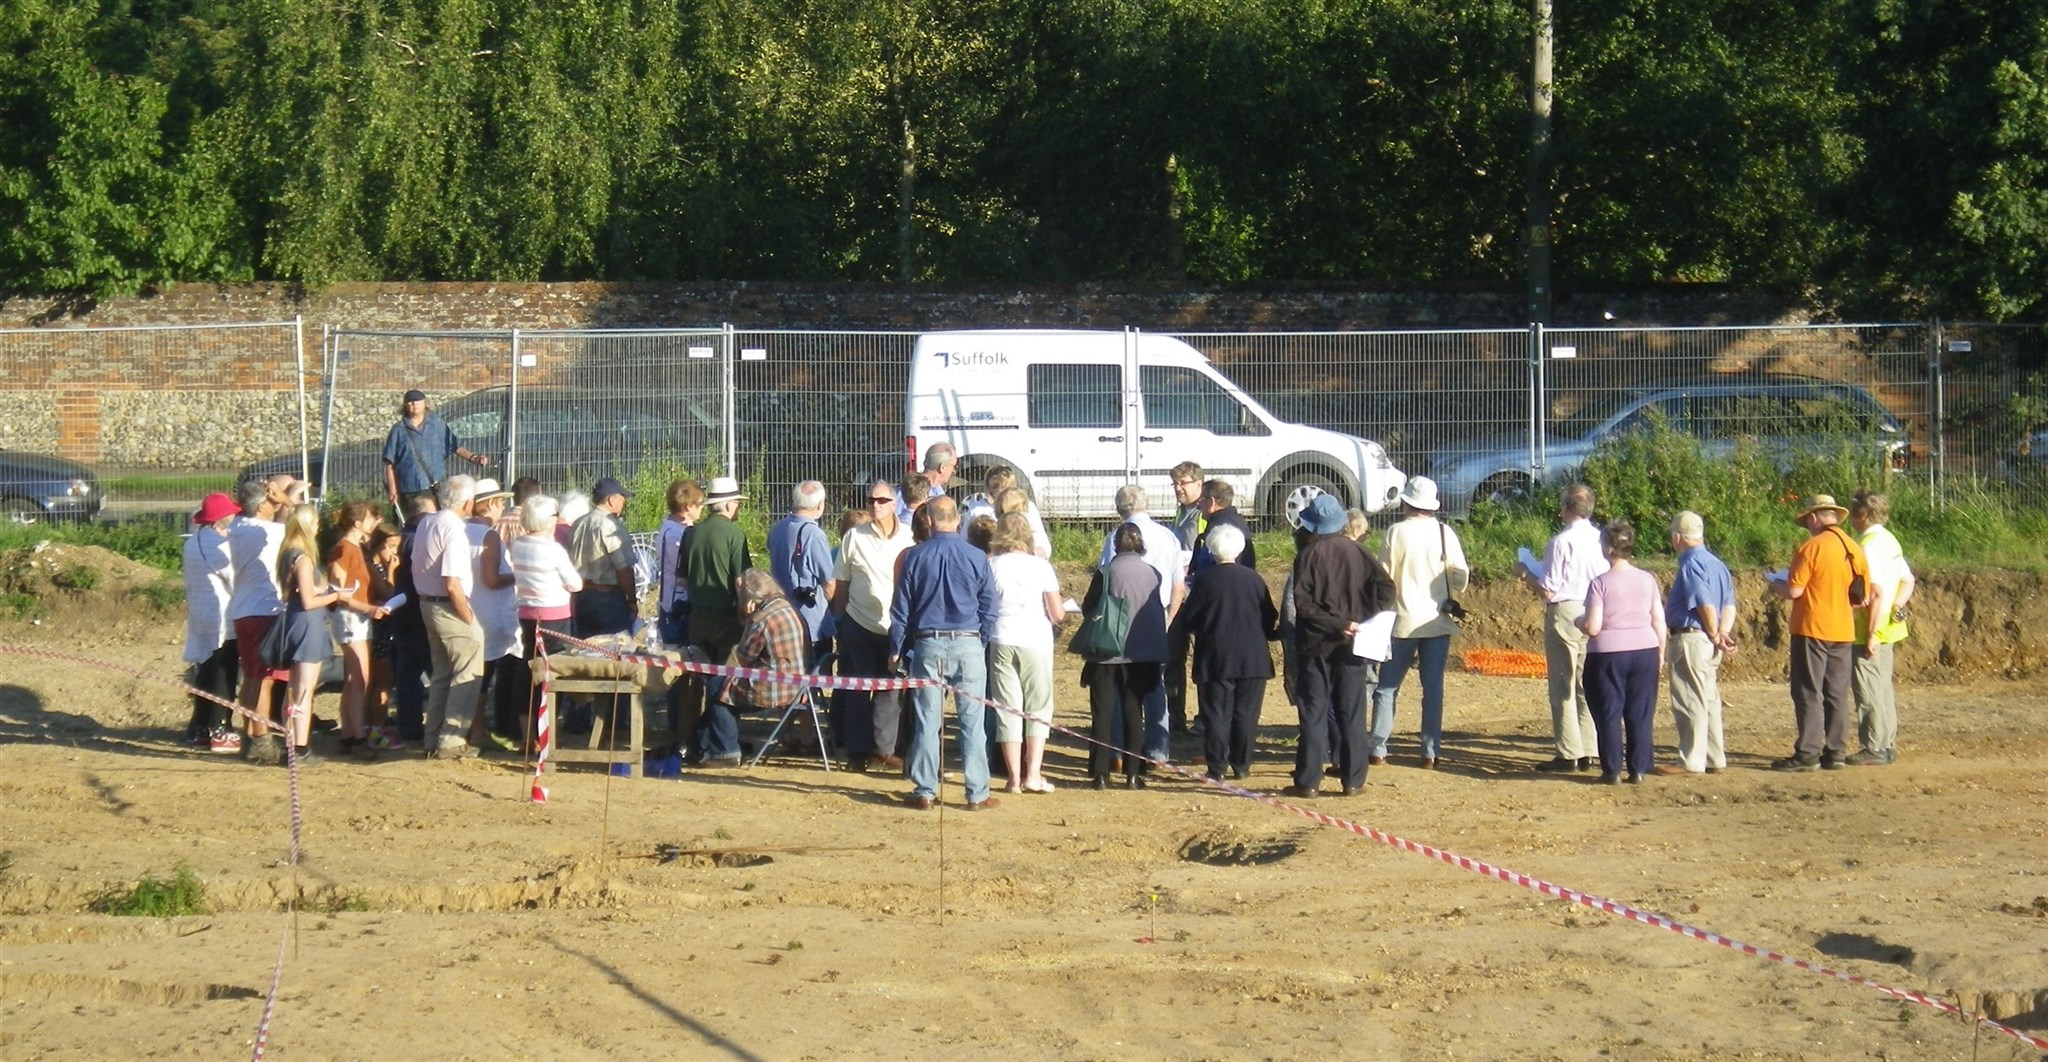 Visitors at an excavation open day on the outskirts of Clare, Suffolk